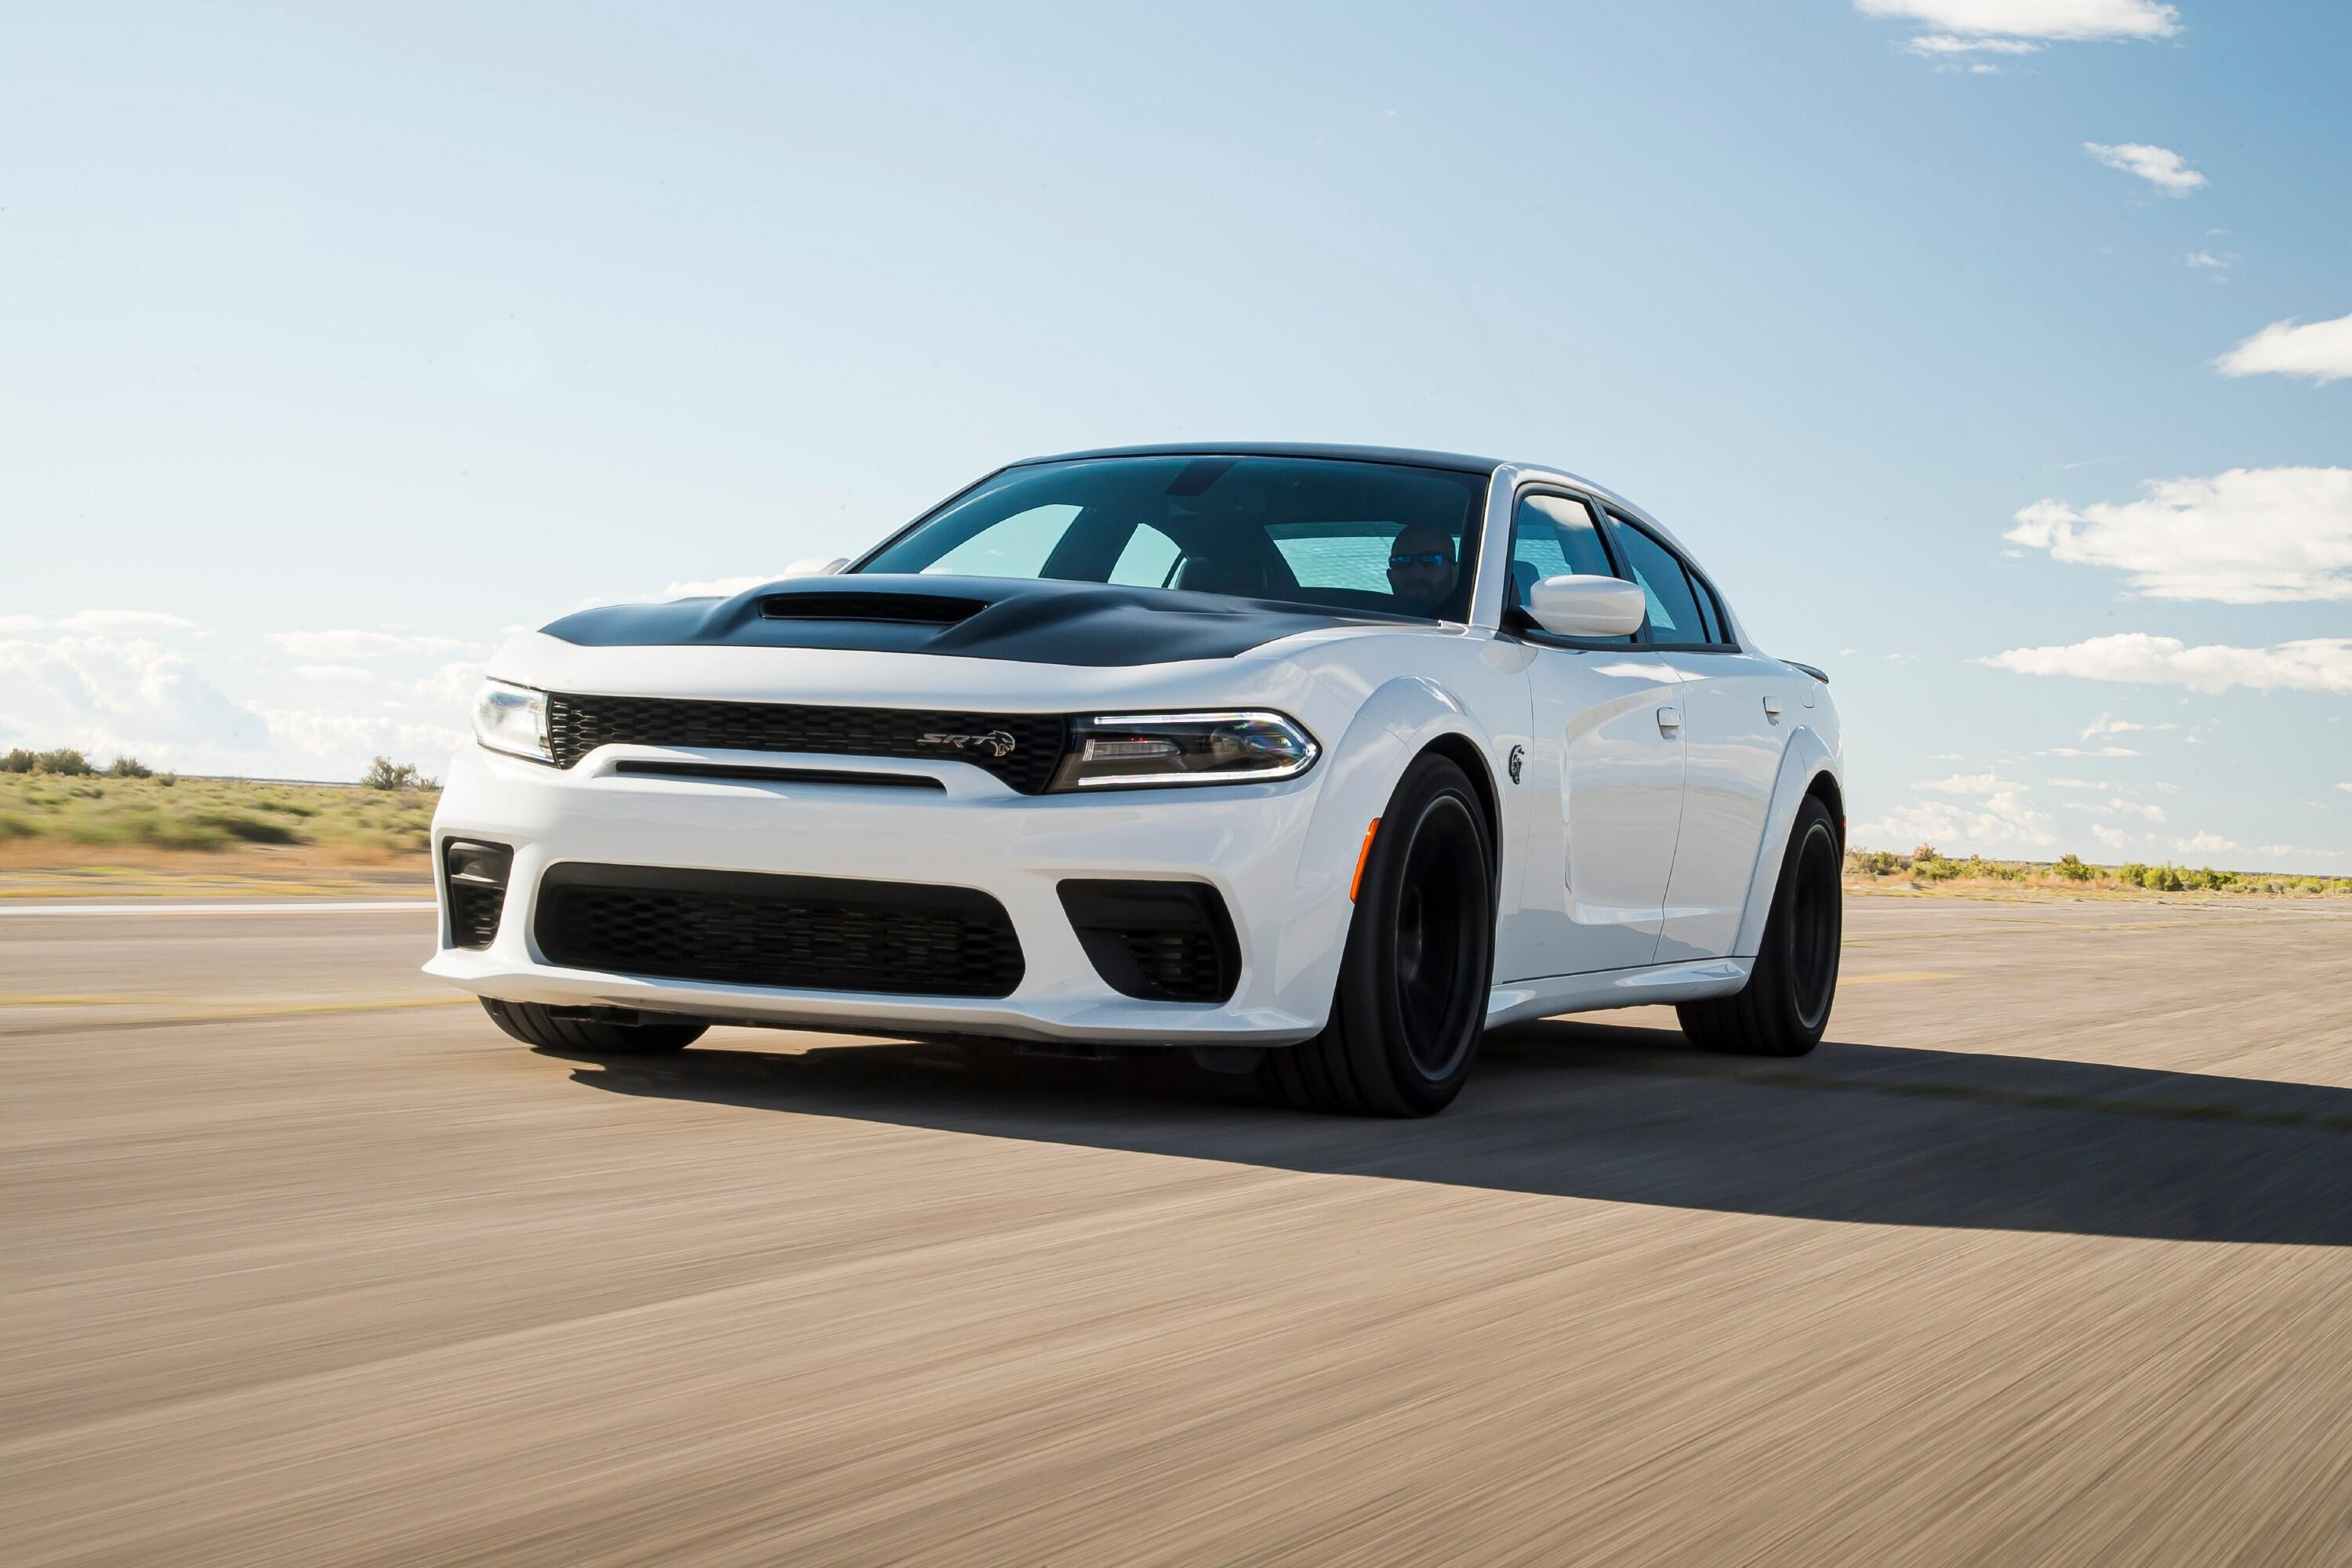 2021-dodge-charger-redeye-030